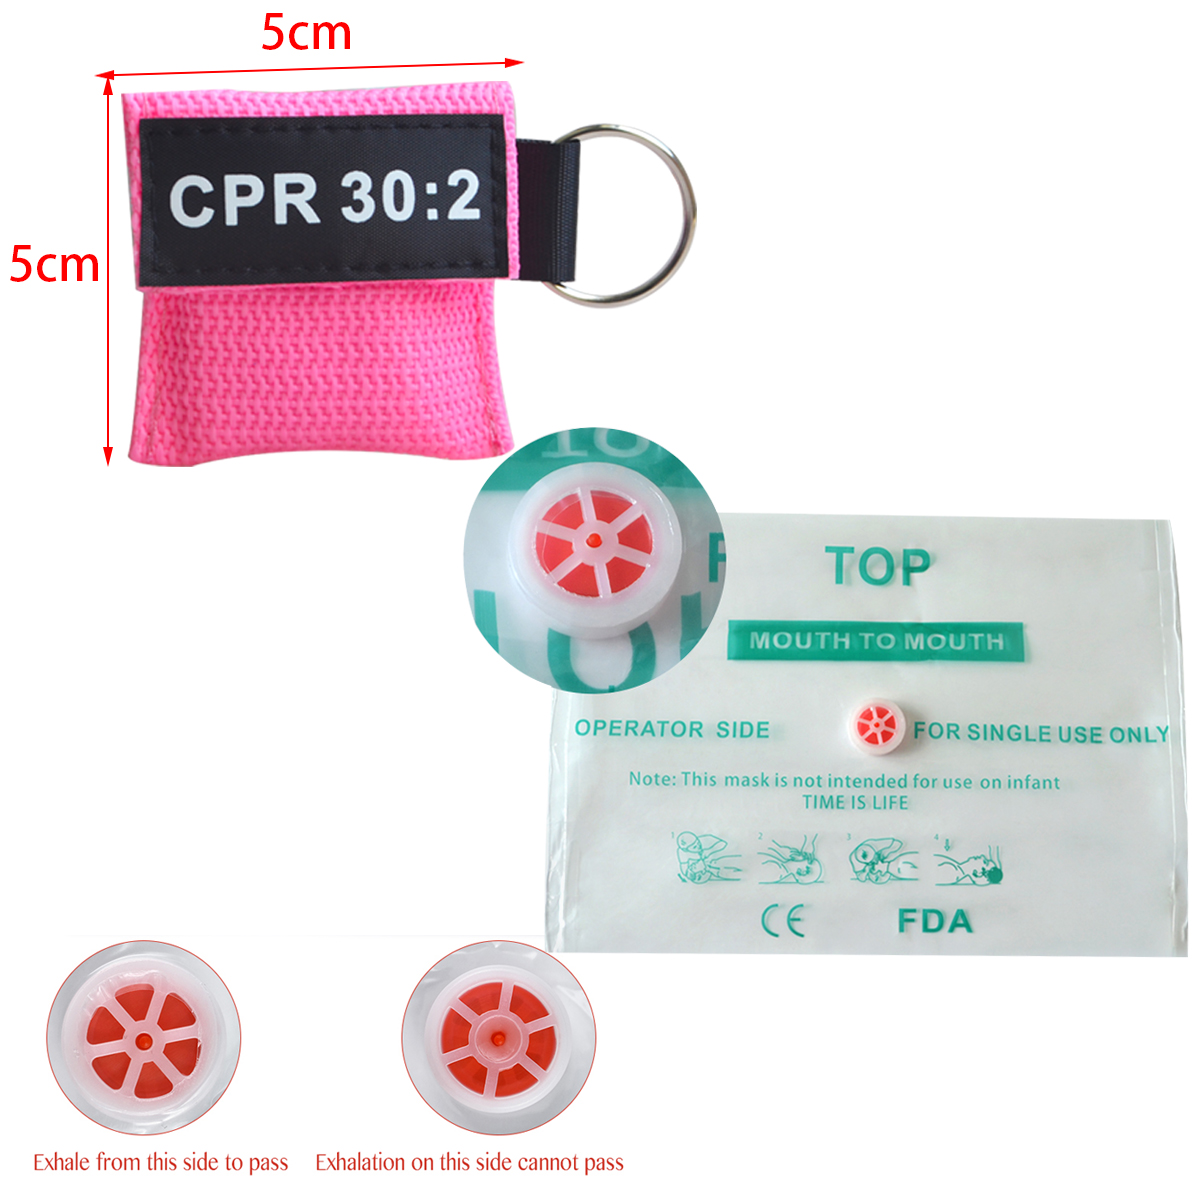 200pcs CPR Resuscitator Mask 30:2 Disposable First Aid Skill Training Face Shield Breathing Mask Mouth Breath One-way Valve Tool